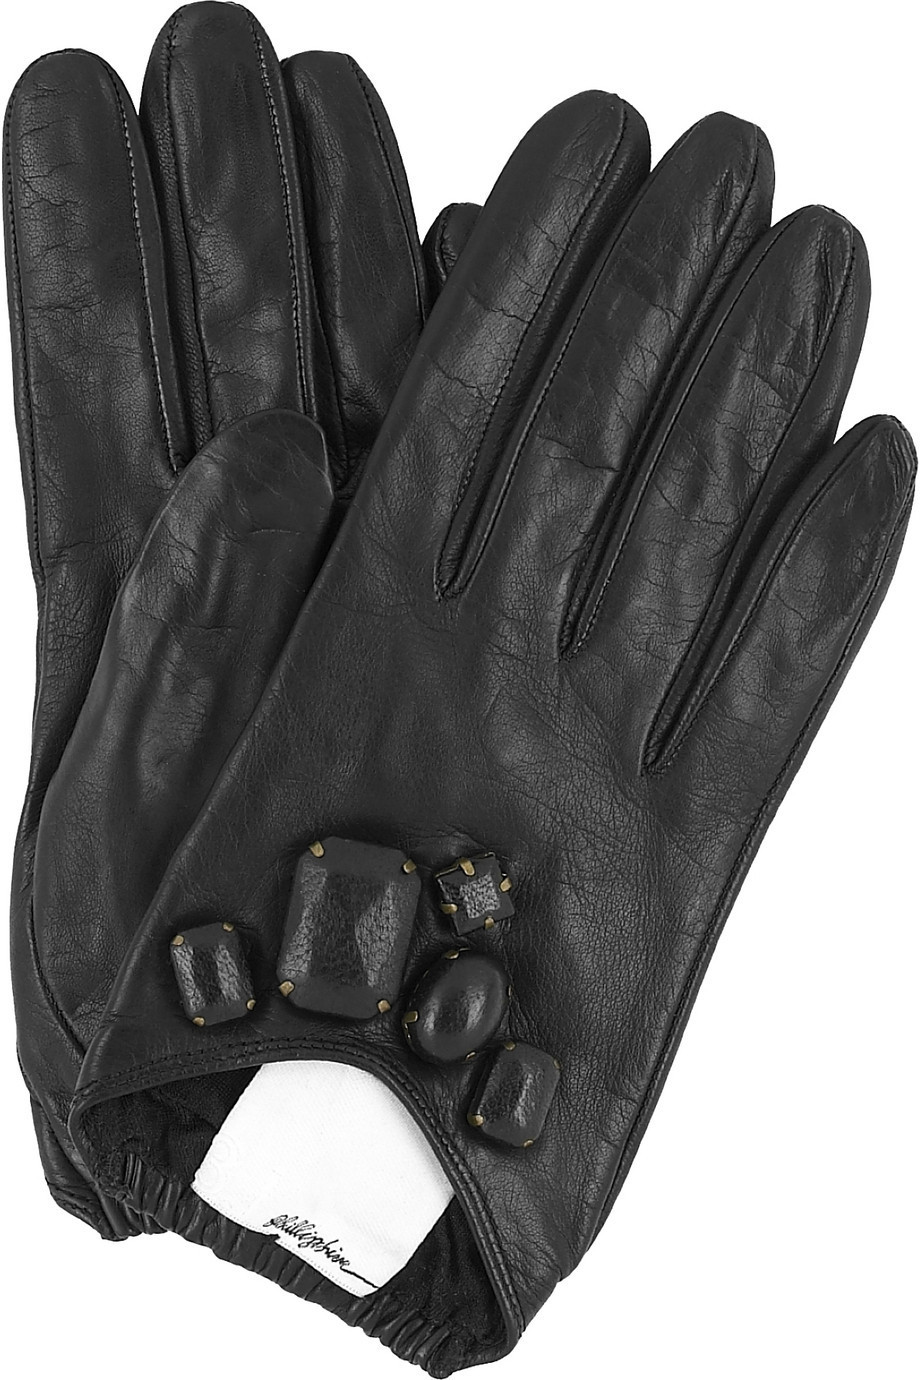 3.1 Phillip Lim Jeweled leather gloves | NET-A-PORTER.COM from net-a-porter.com